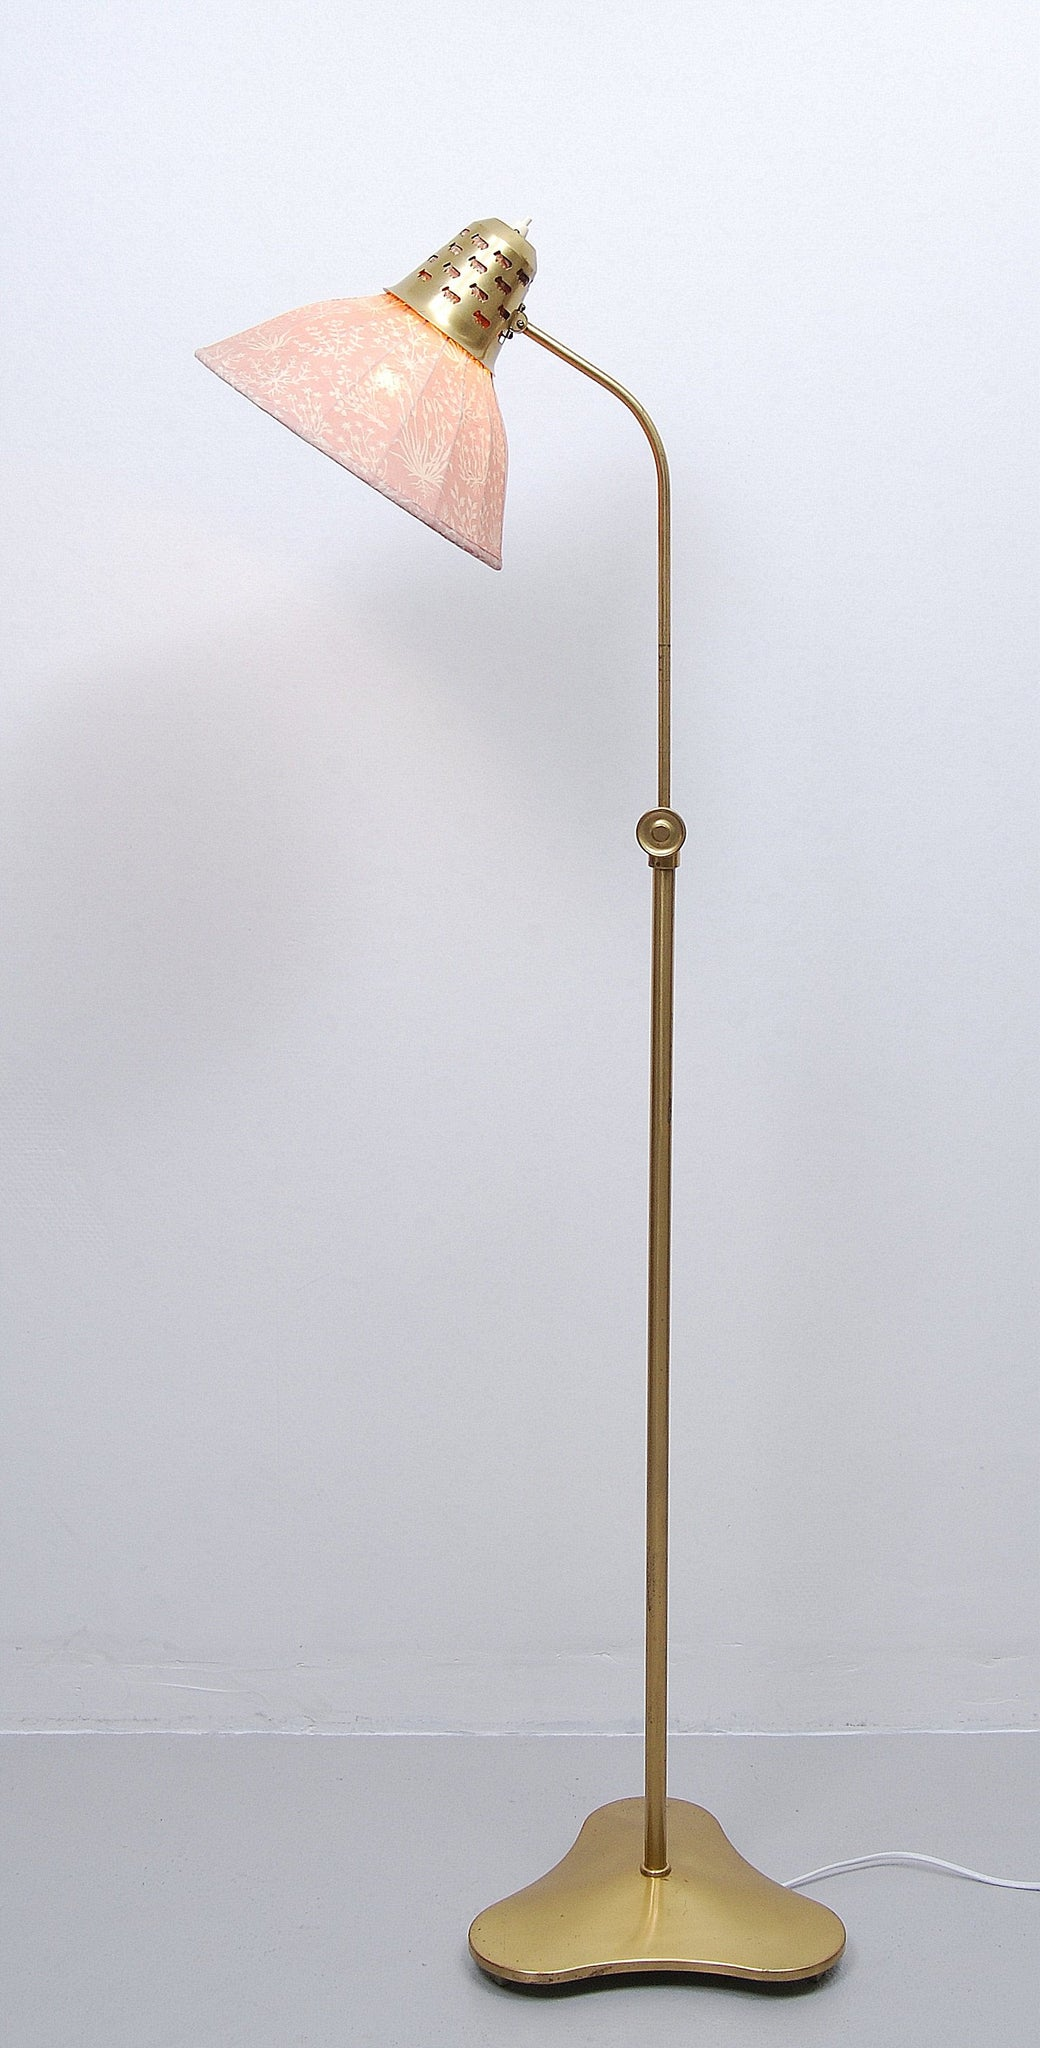 Brass Floor Lamp by Hans Bergström for ASEA, 1940s